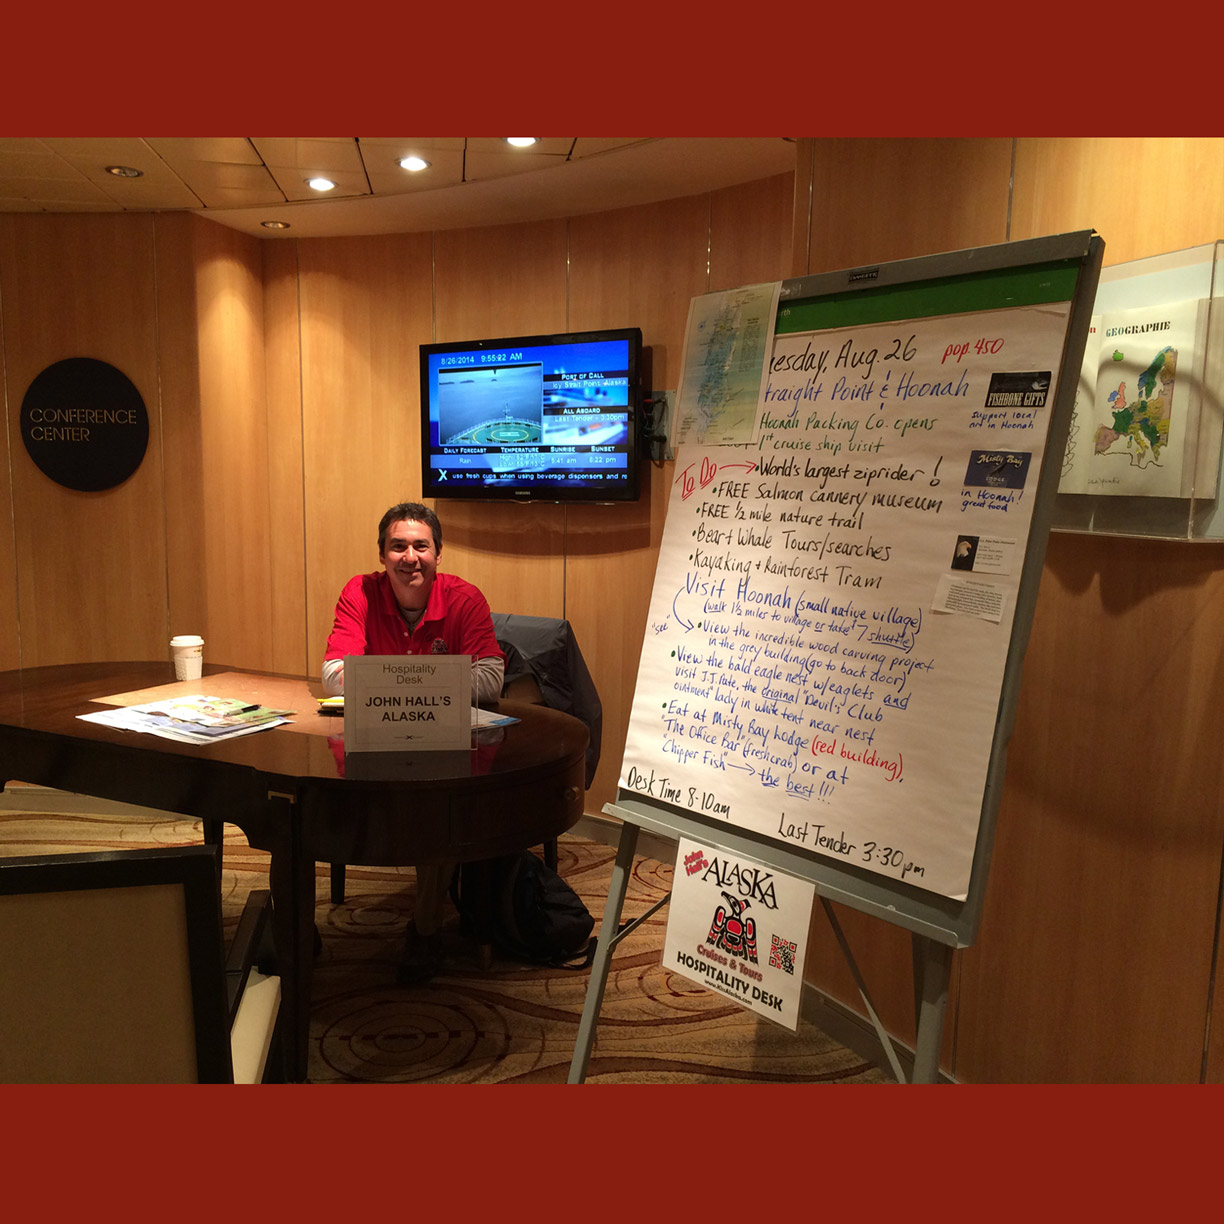 Cruise Manager, John Hall's Alaska